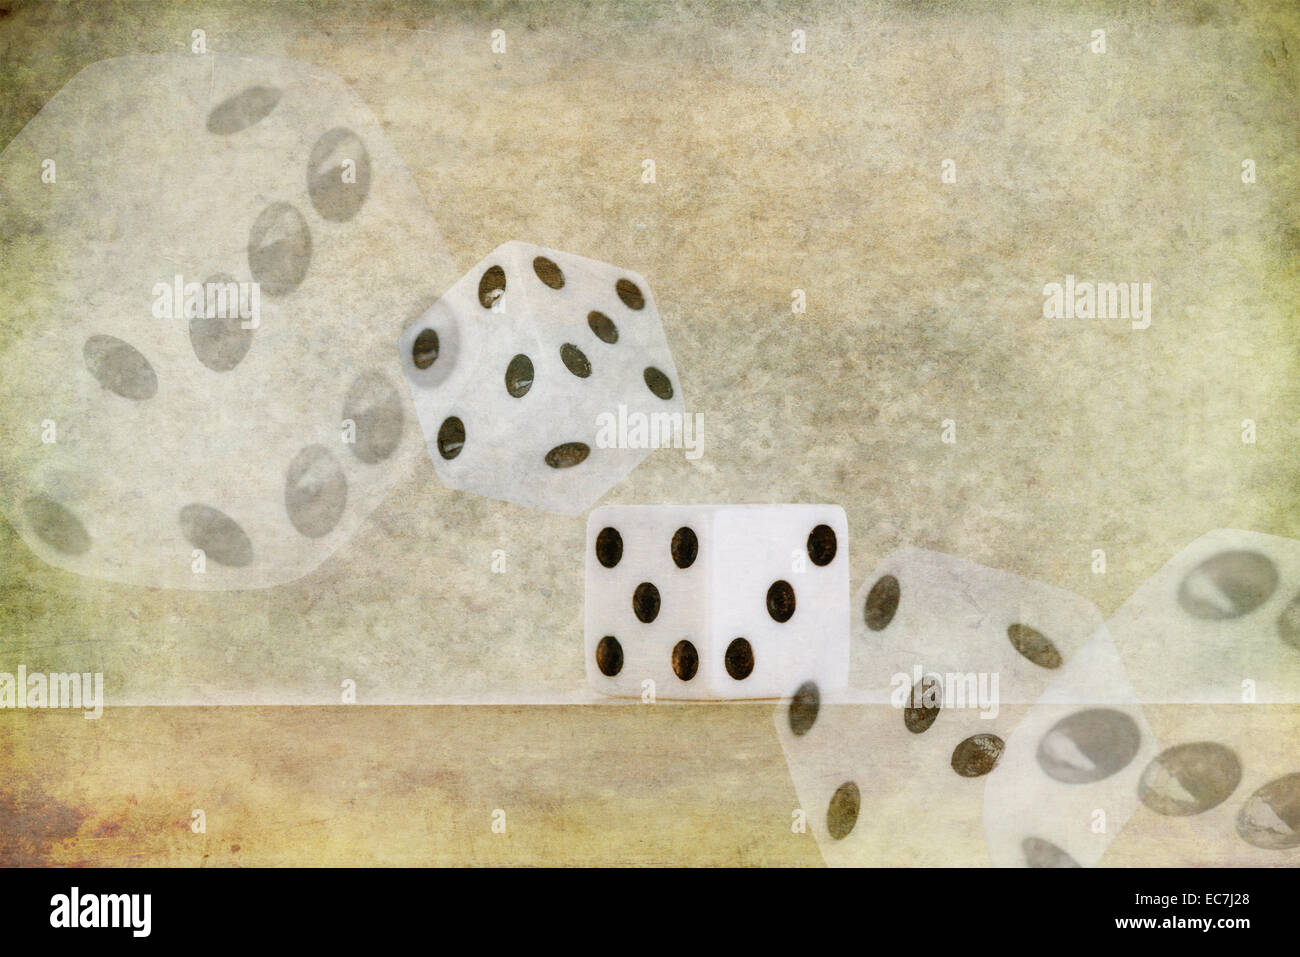 roll of the die dice chance of landing on lucky six number on edge of shelf falling off with probability and chance - Stock Image